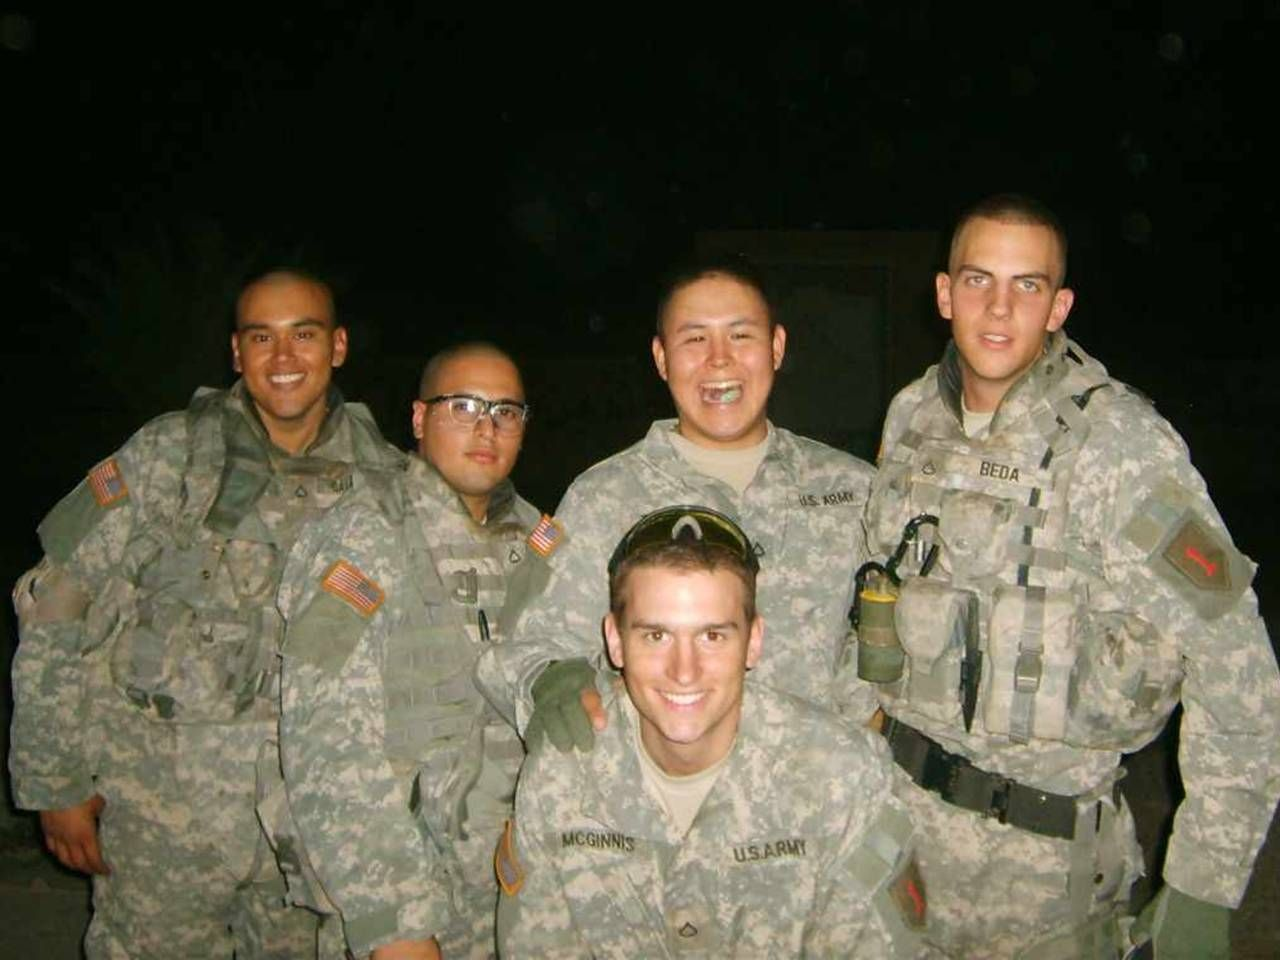 ramcginnis-from-his-unit-photo-06.jpg